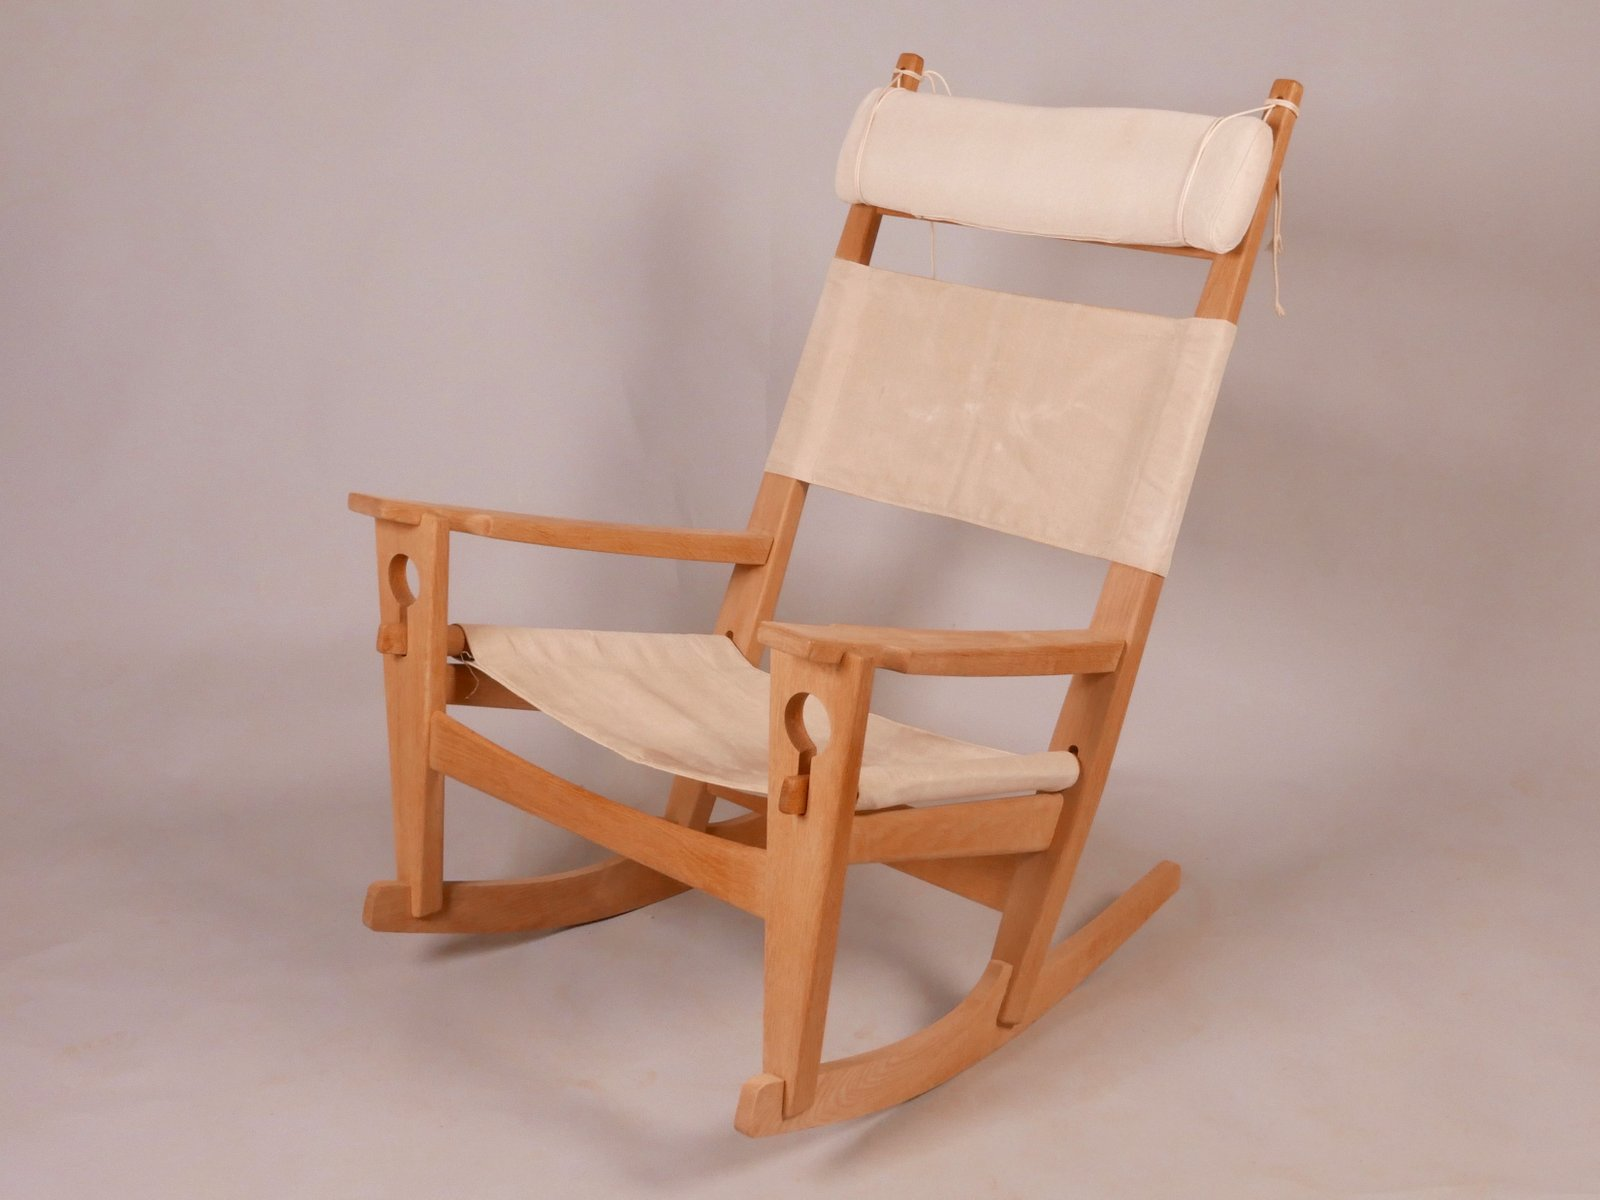 ge 673 rocking chair by hans j wegner for sale at pamono. Black Bedroom Furniture Sets. Home Design Ideas